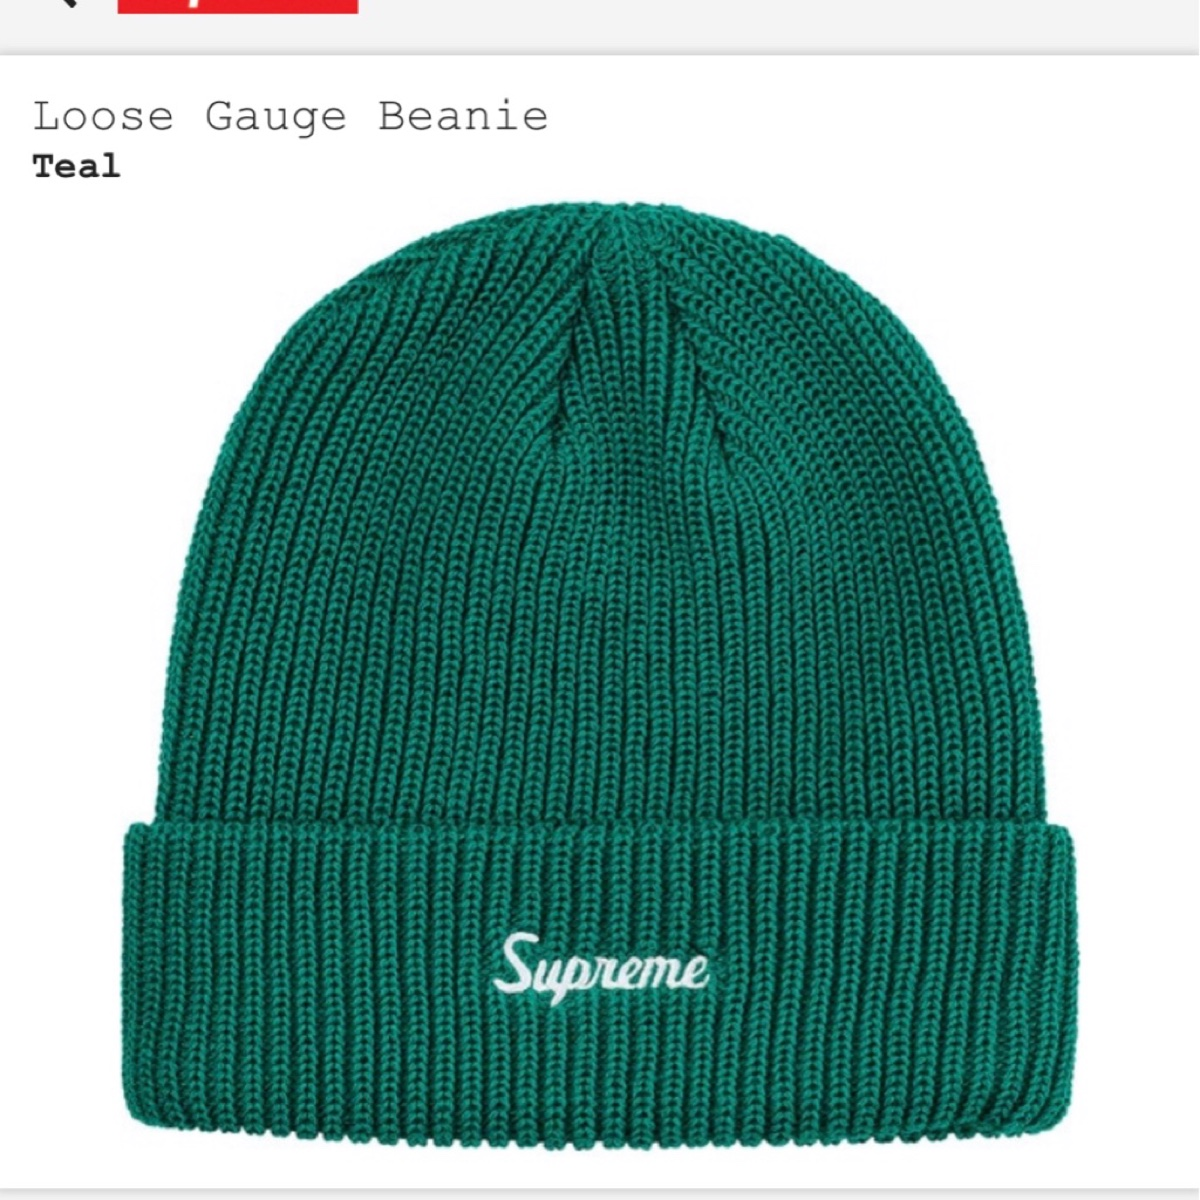 Supreme loose Gauge Beanie - Teal